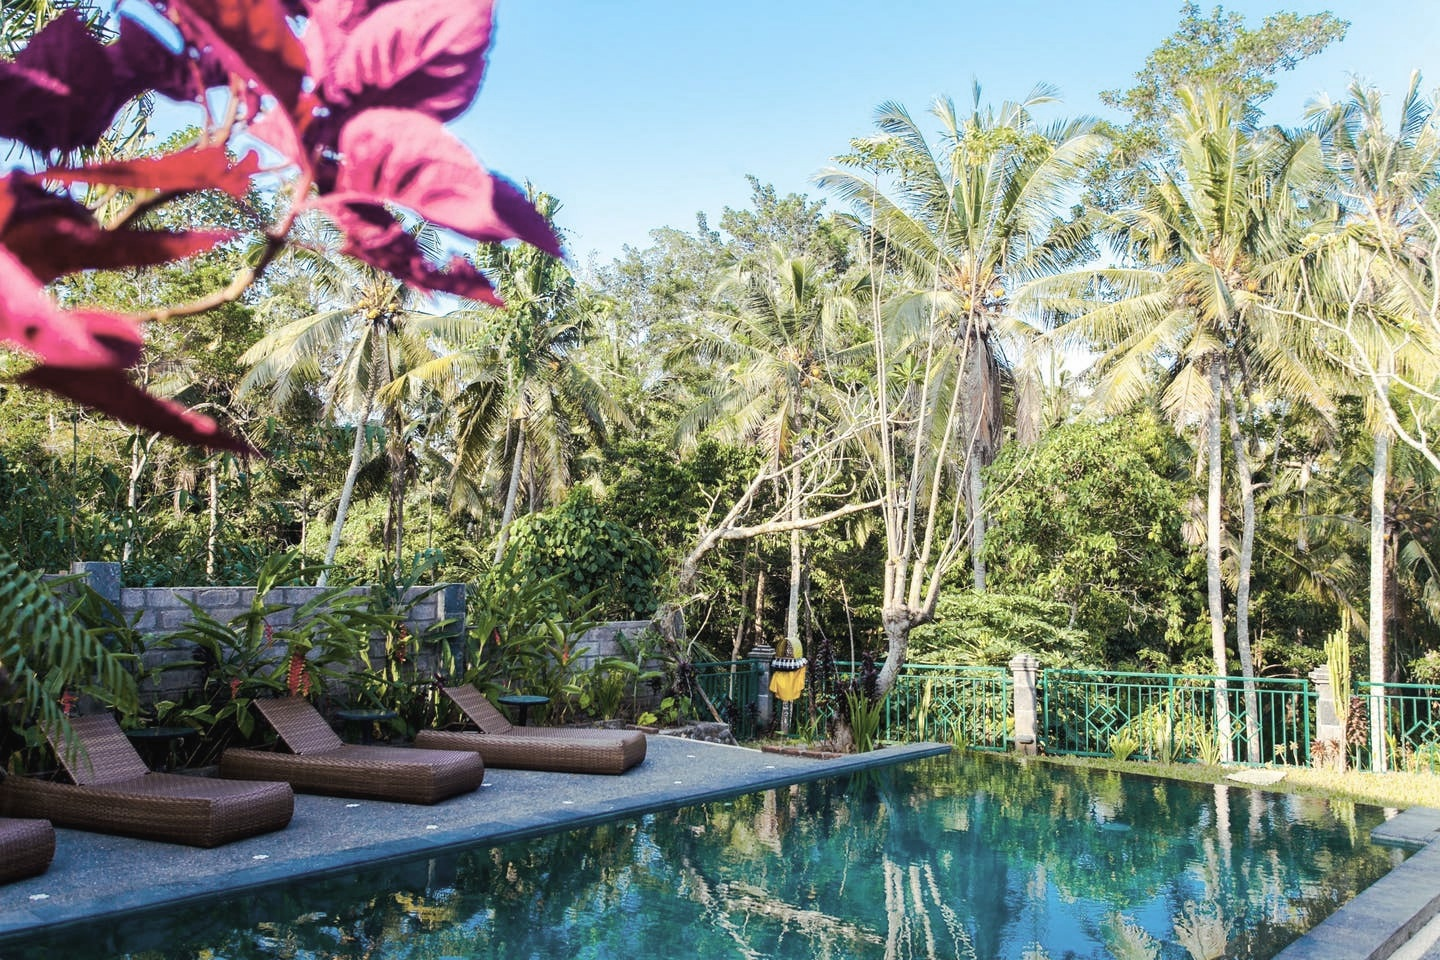 The Bali Immersion